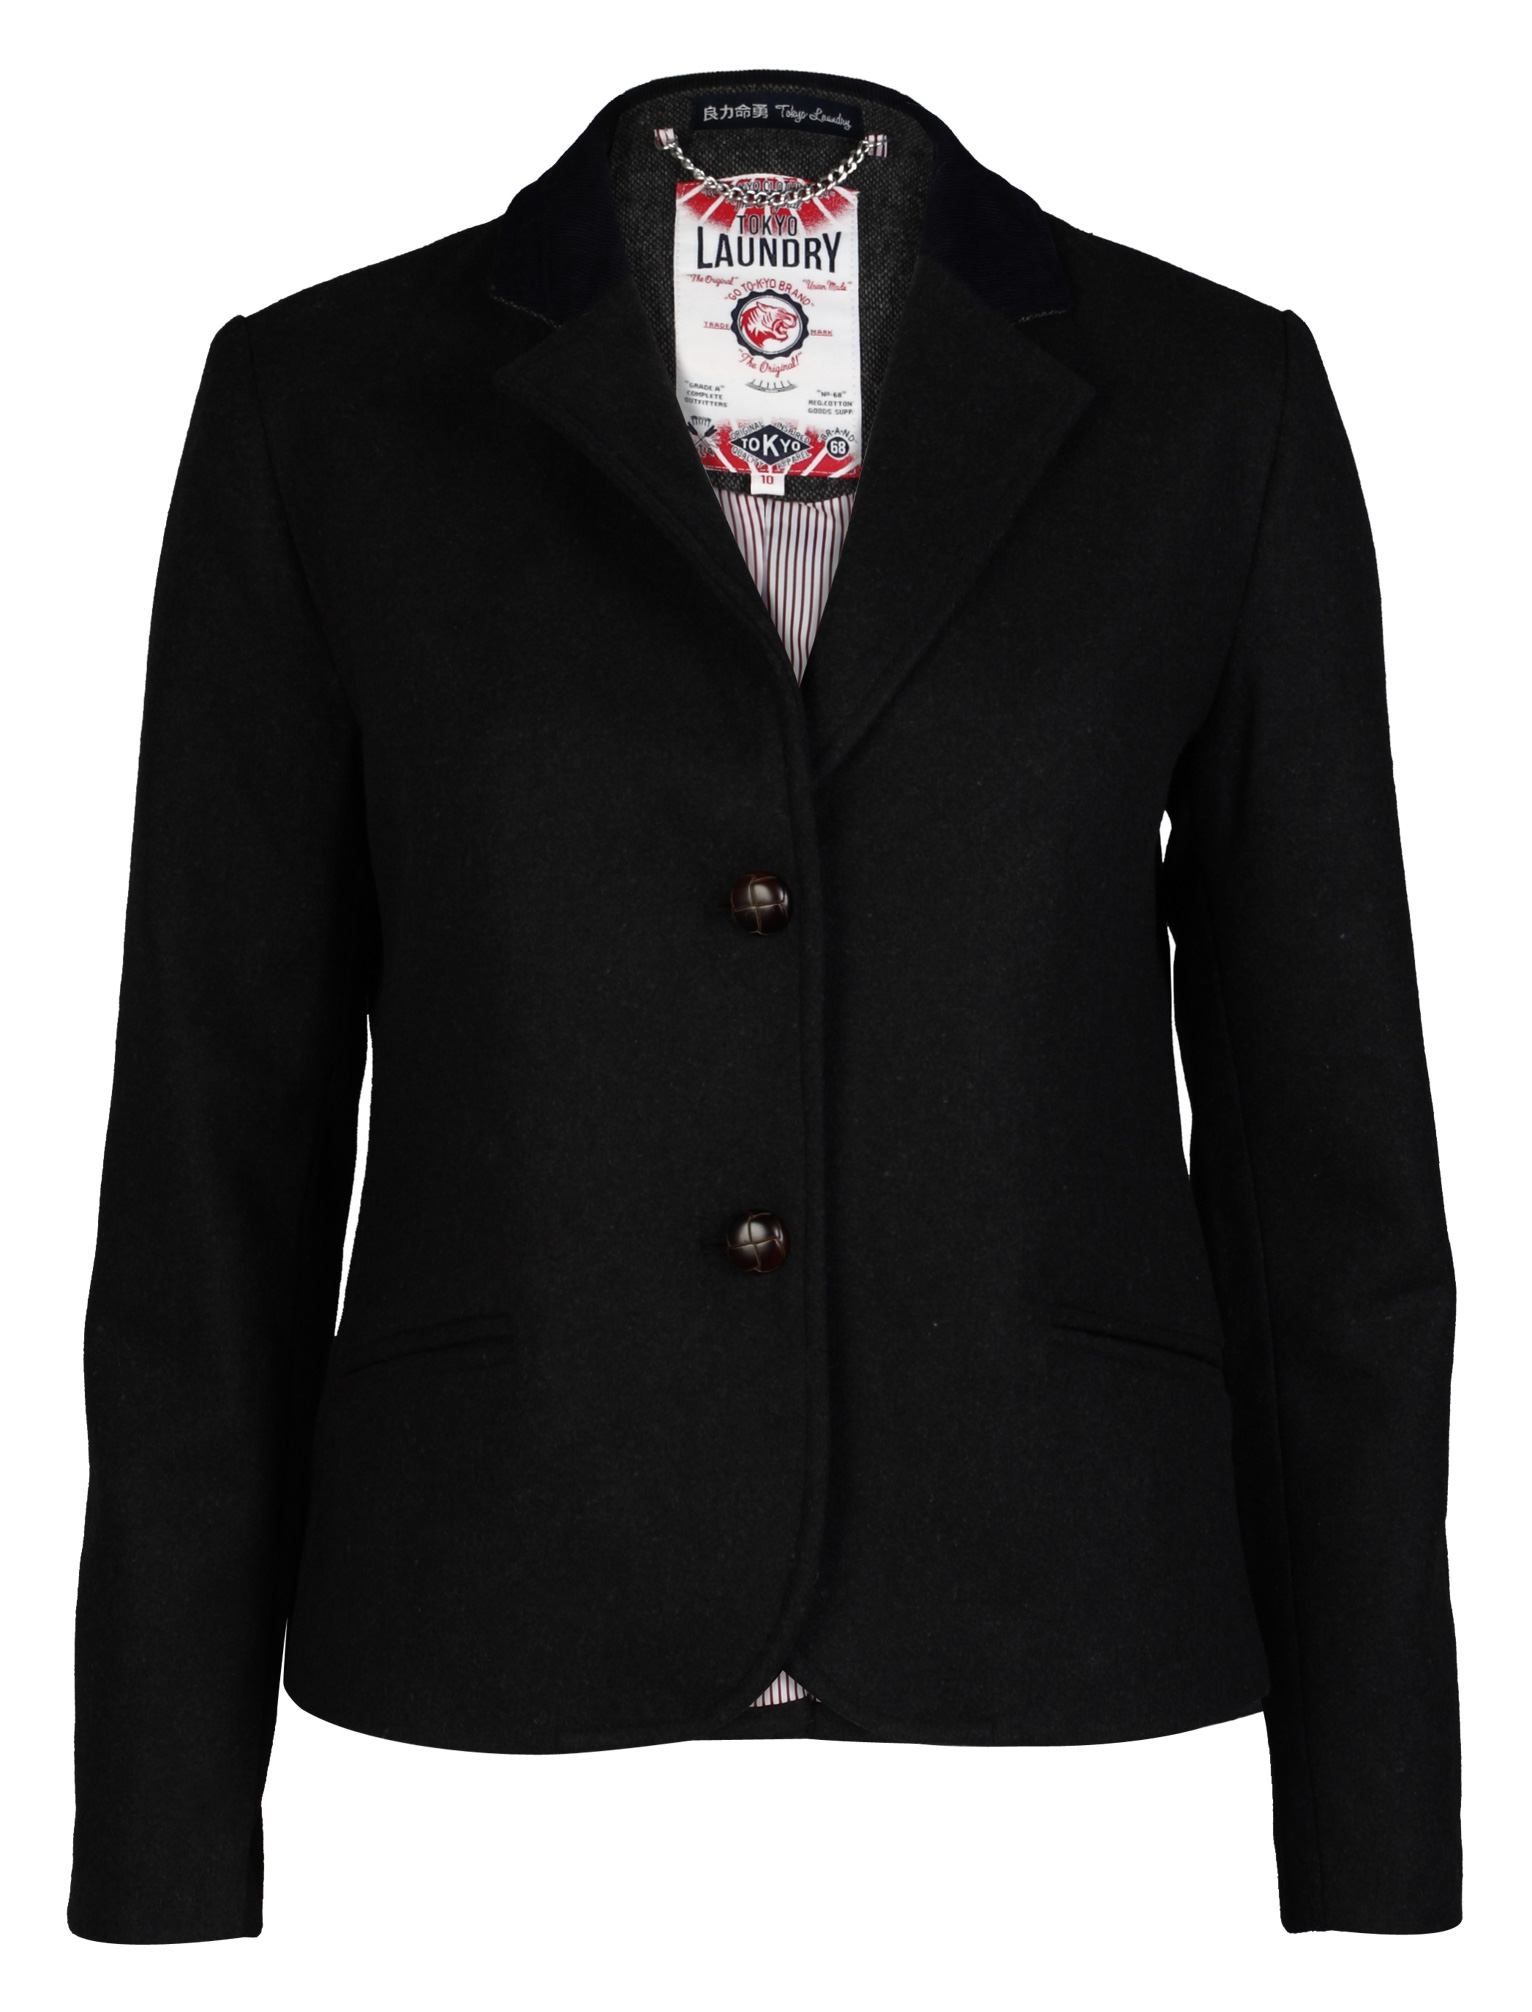 Best prices on Womens tweed jacket blazer in Women's Suits/Blazers online. Visit Bizrate to find the best deals on top brands. Read reviews on Clothing & Accessories merchants and buy with confidence.